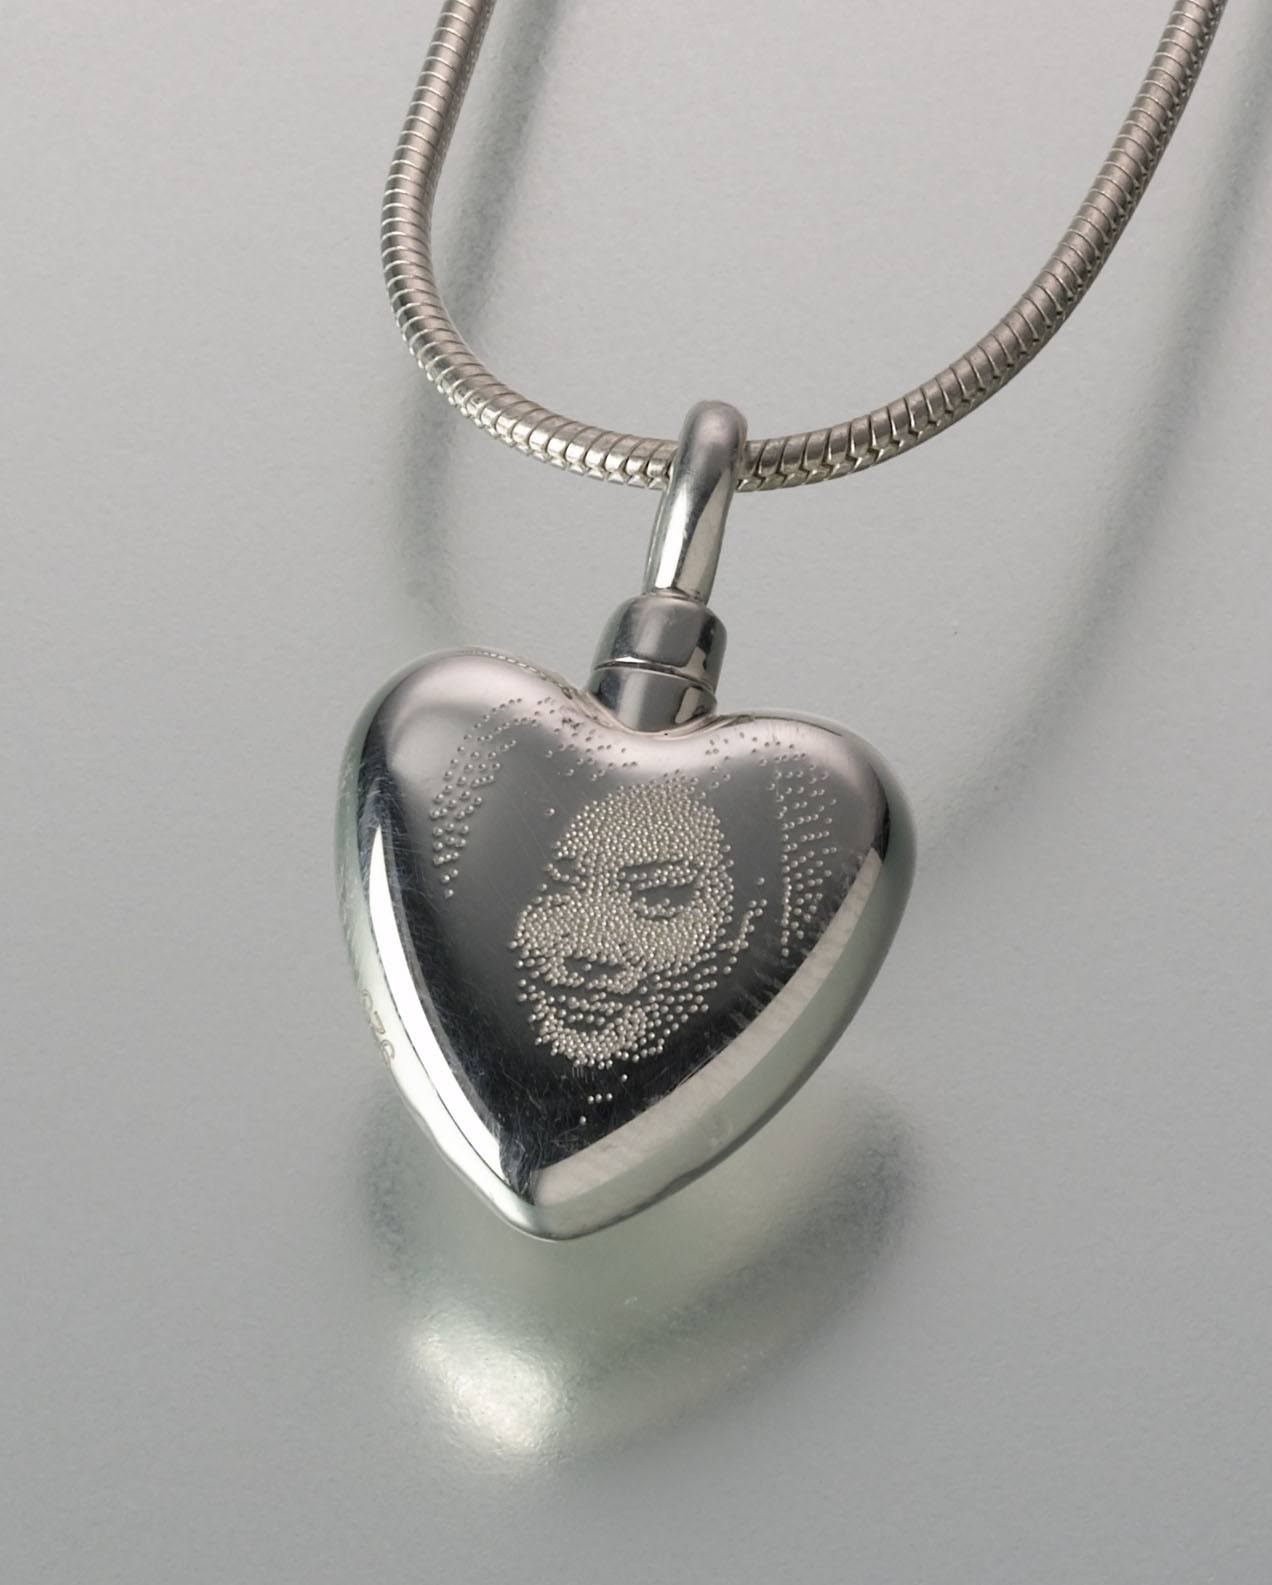 mia silver l necklaces photo by etched modern belle sterling moms vintage family necklace for engraved jewelry